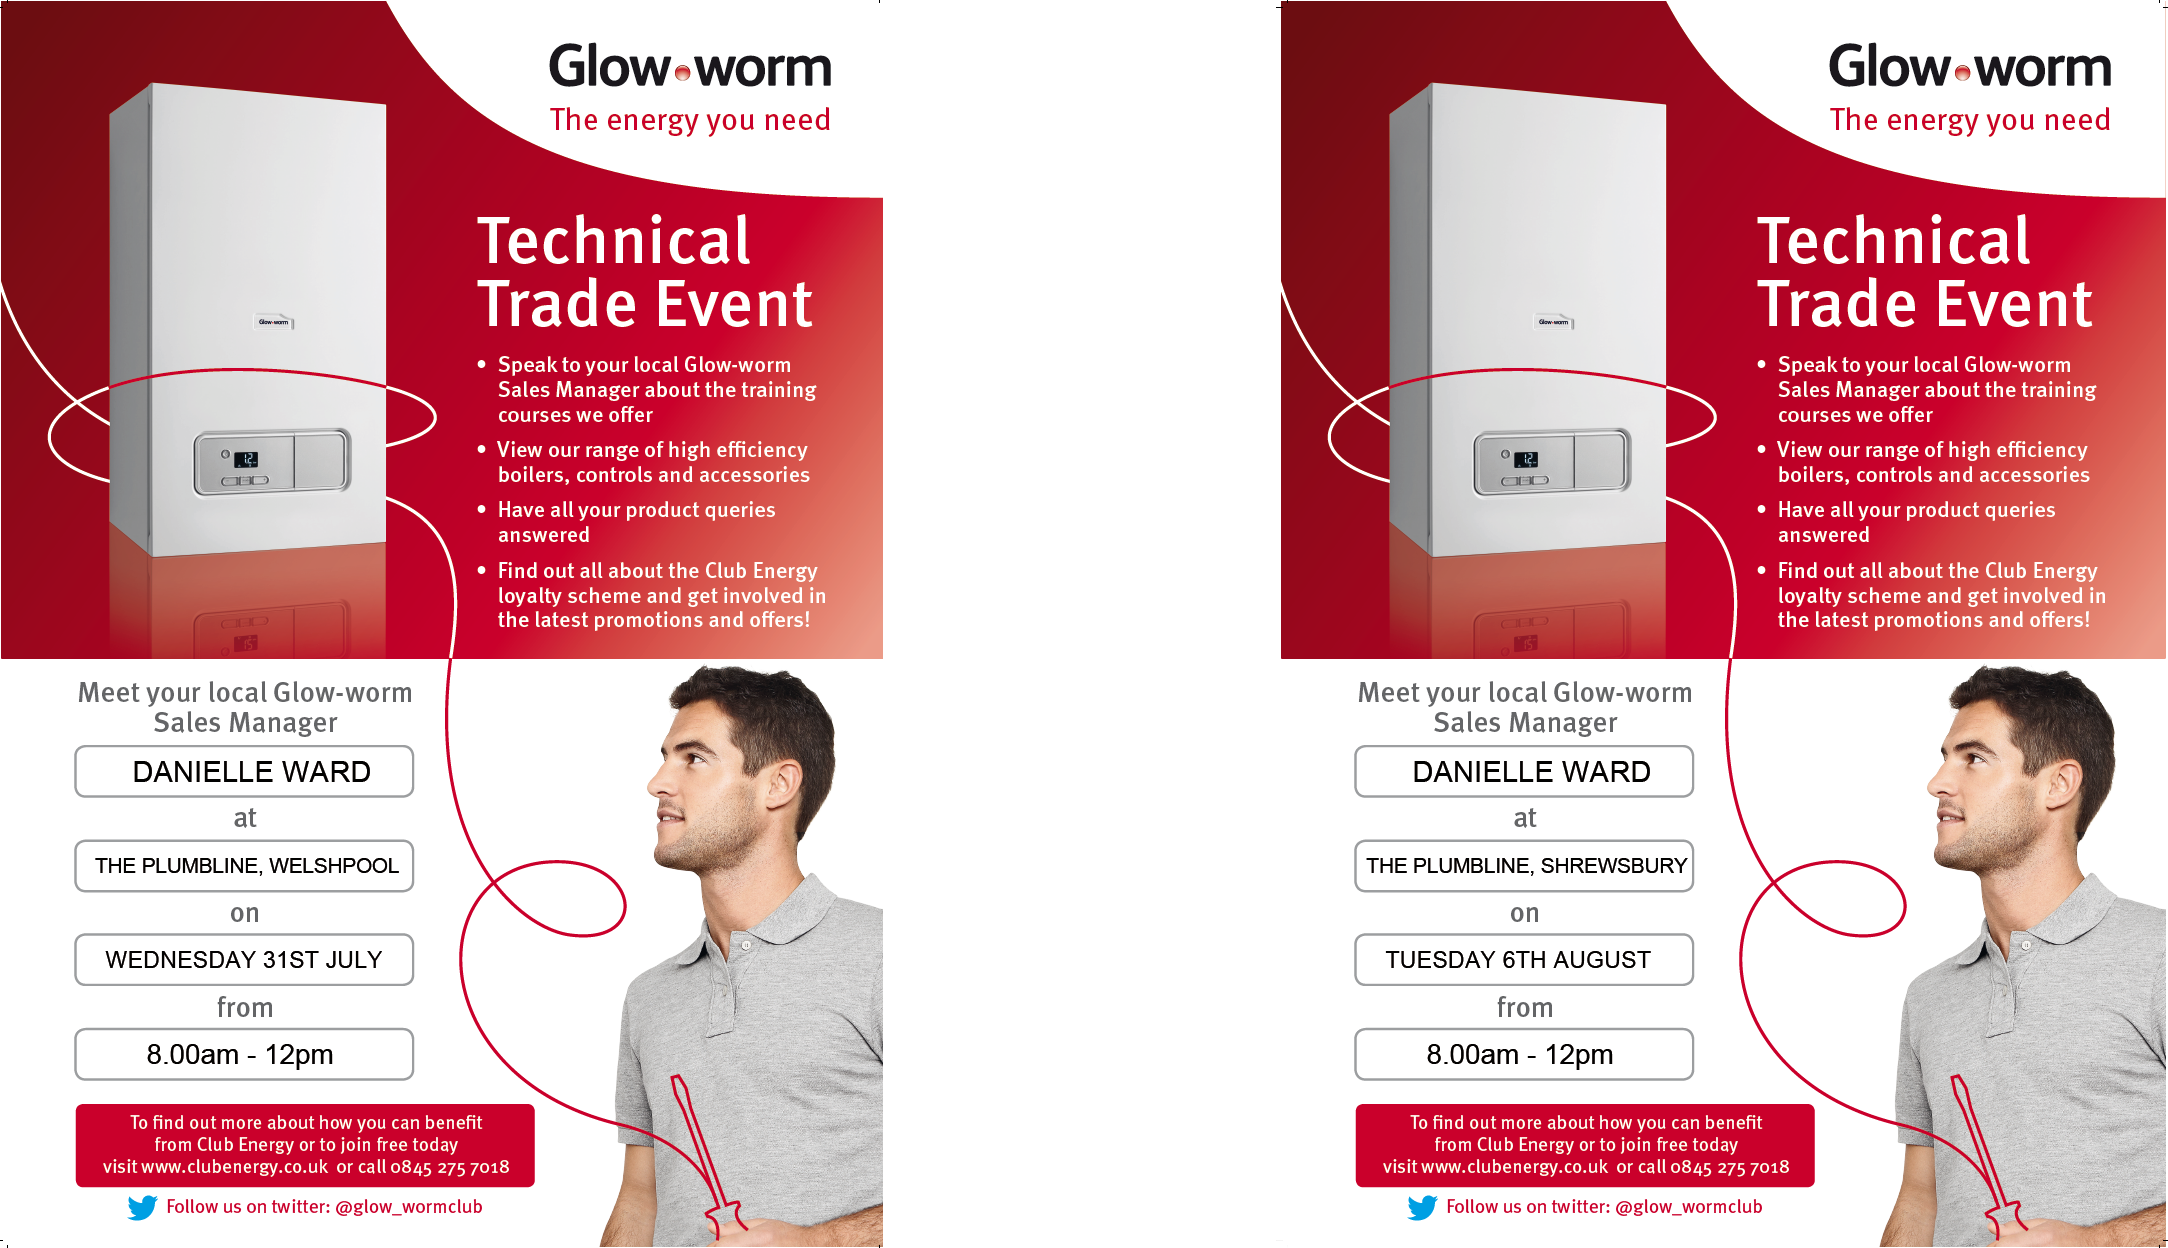 glow-worm technical trade event, boiler advice, boilers shrewsbury, boilers welshpool